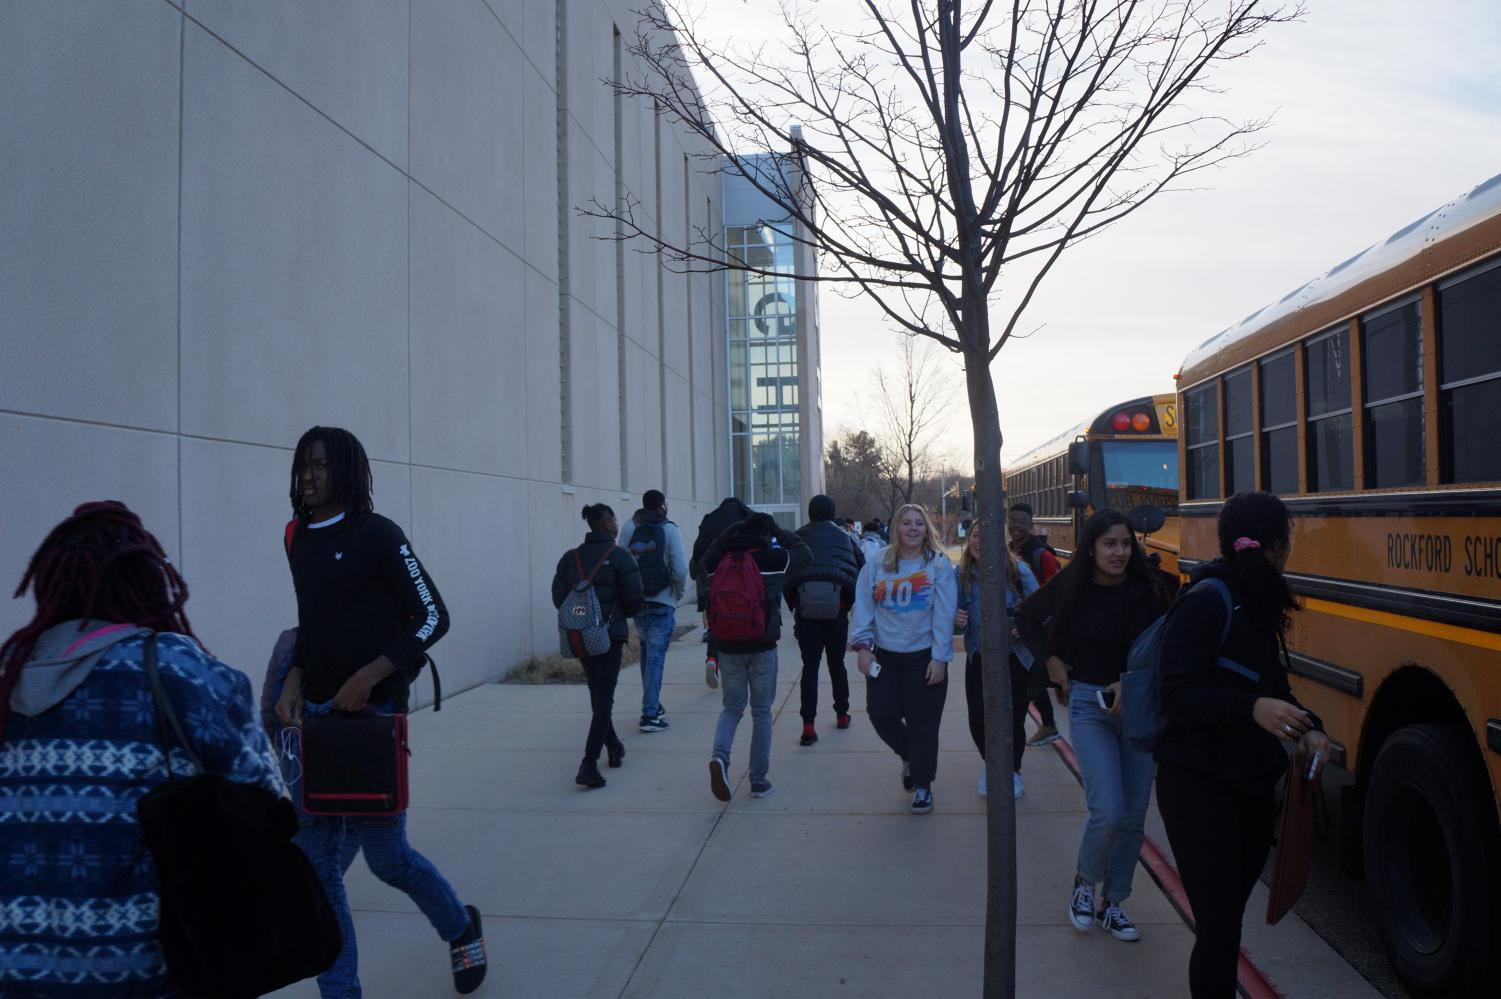 Students make their way from the new bus drop-off to the main entrance.